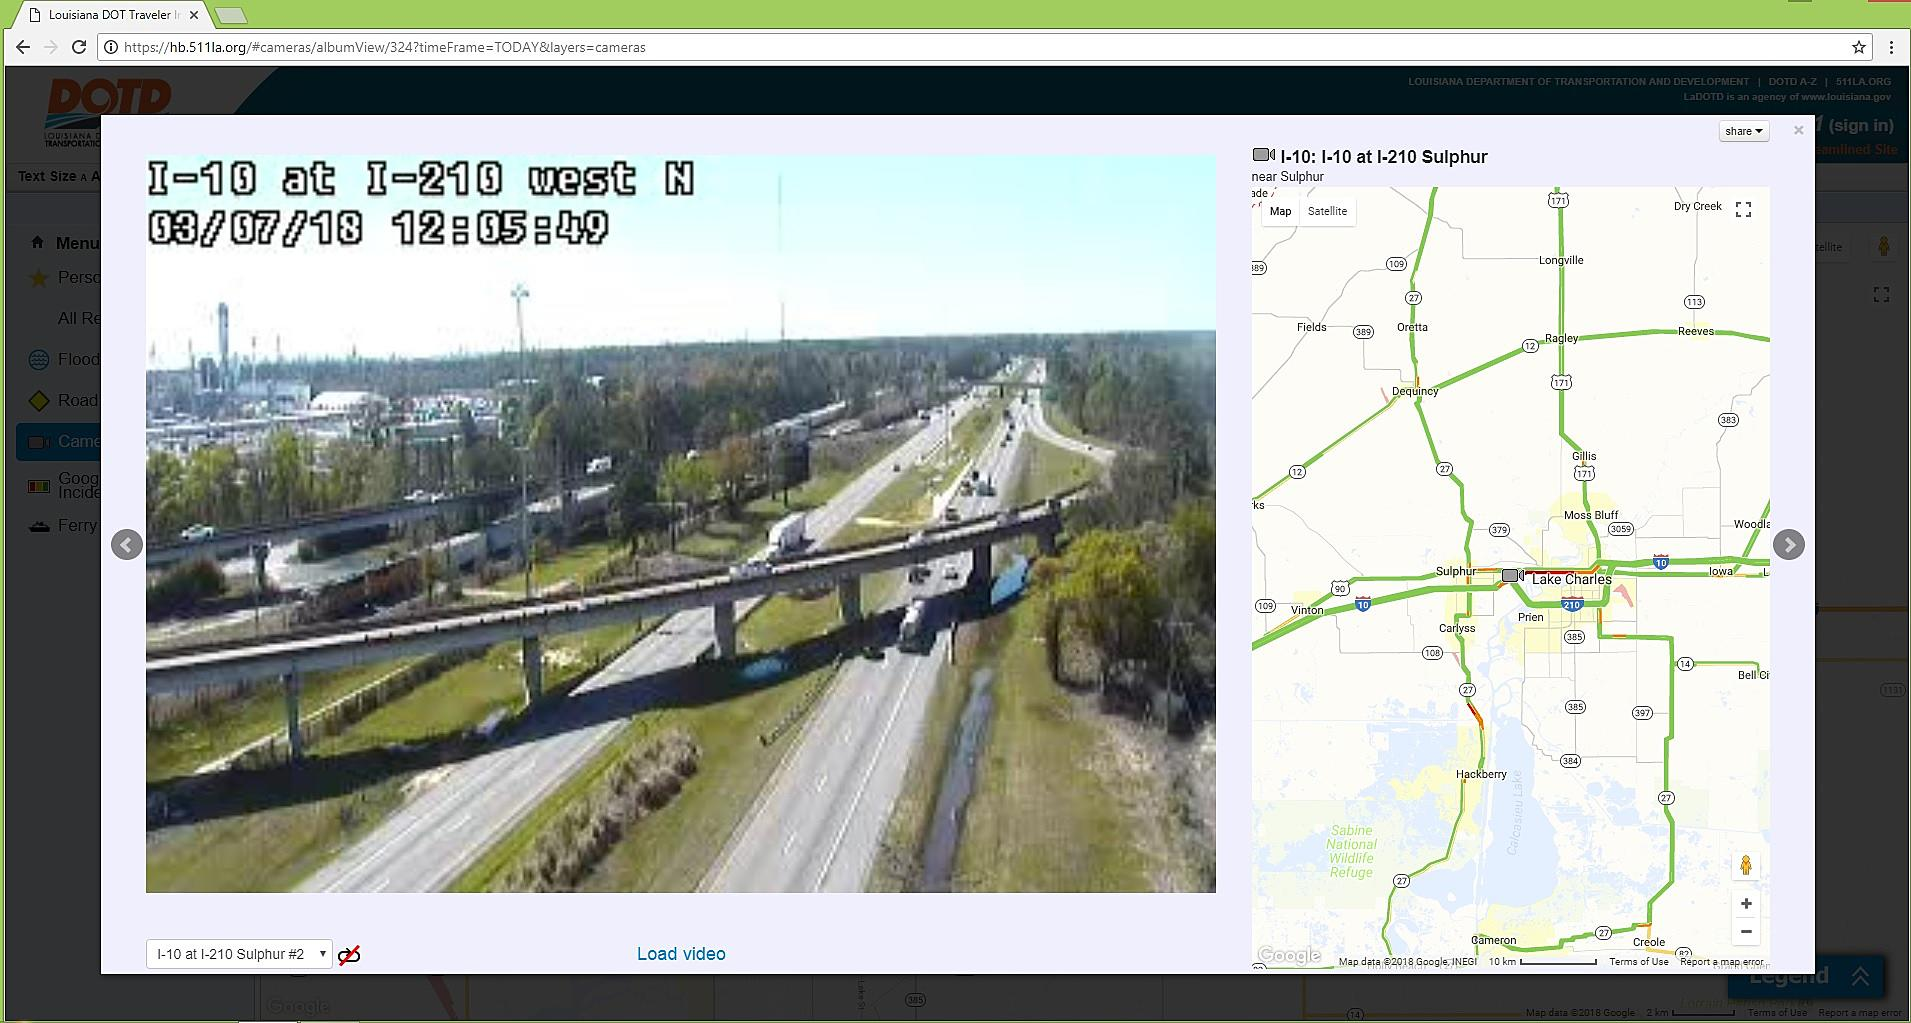 511la org Updates Site With More I-10/I-210 Traffic Cameras